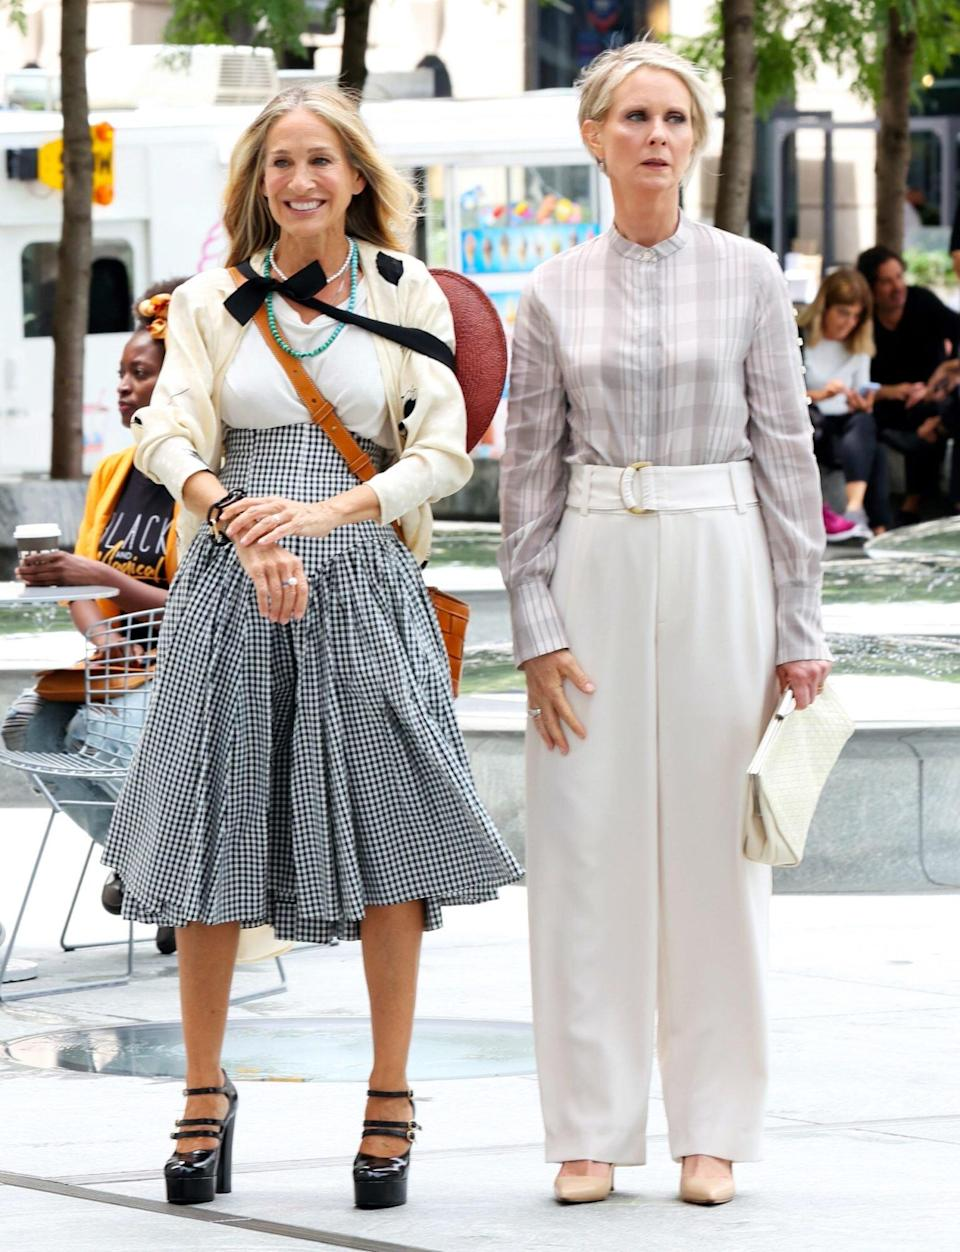 """Sarah Jessica Parker and Cynthia Nixon are seen on the set of """"And Just Like that"""" on July 09, 2021 in New York City"""